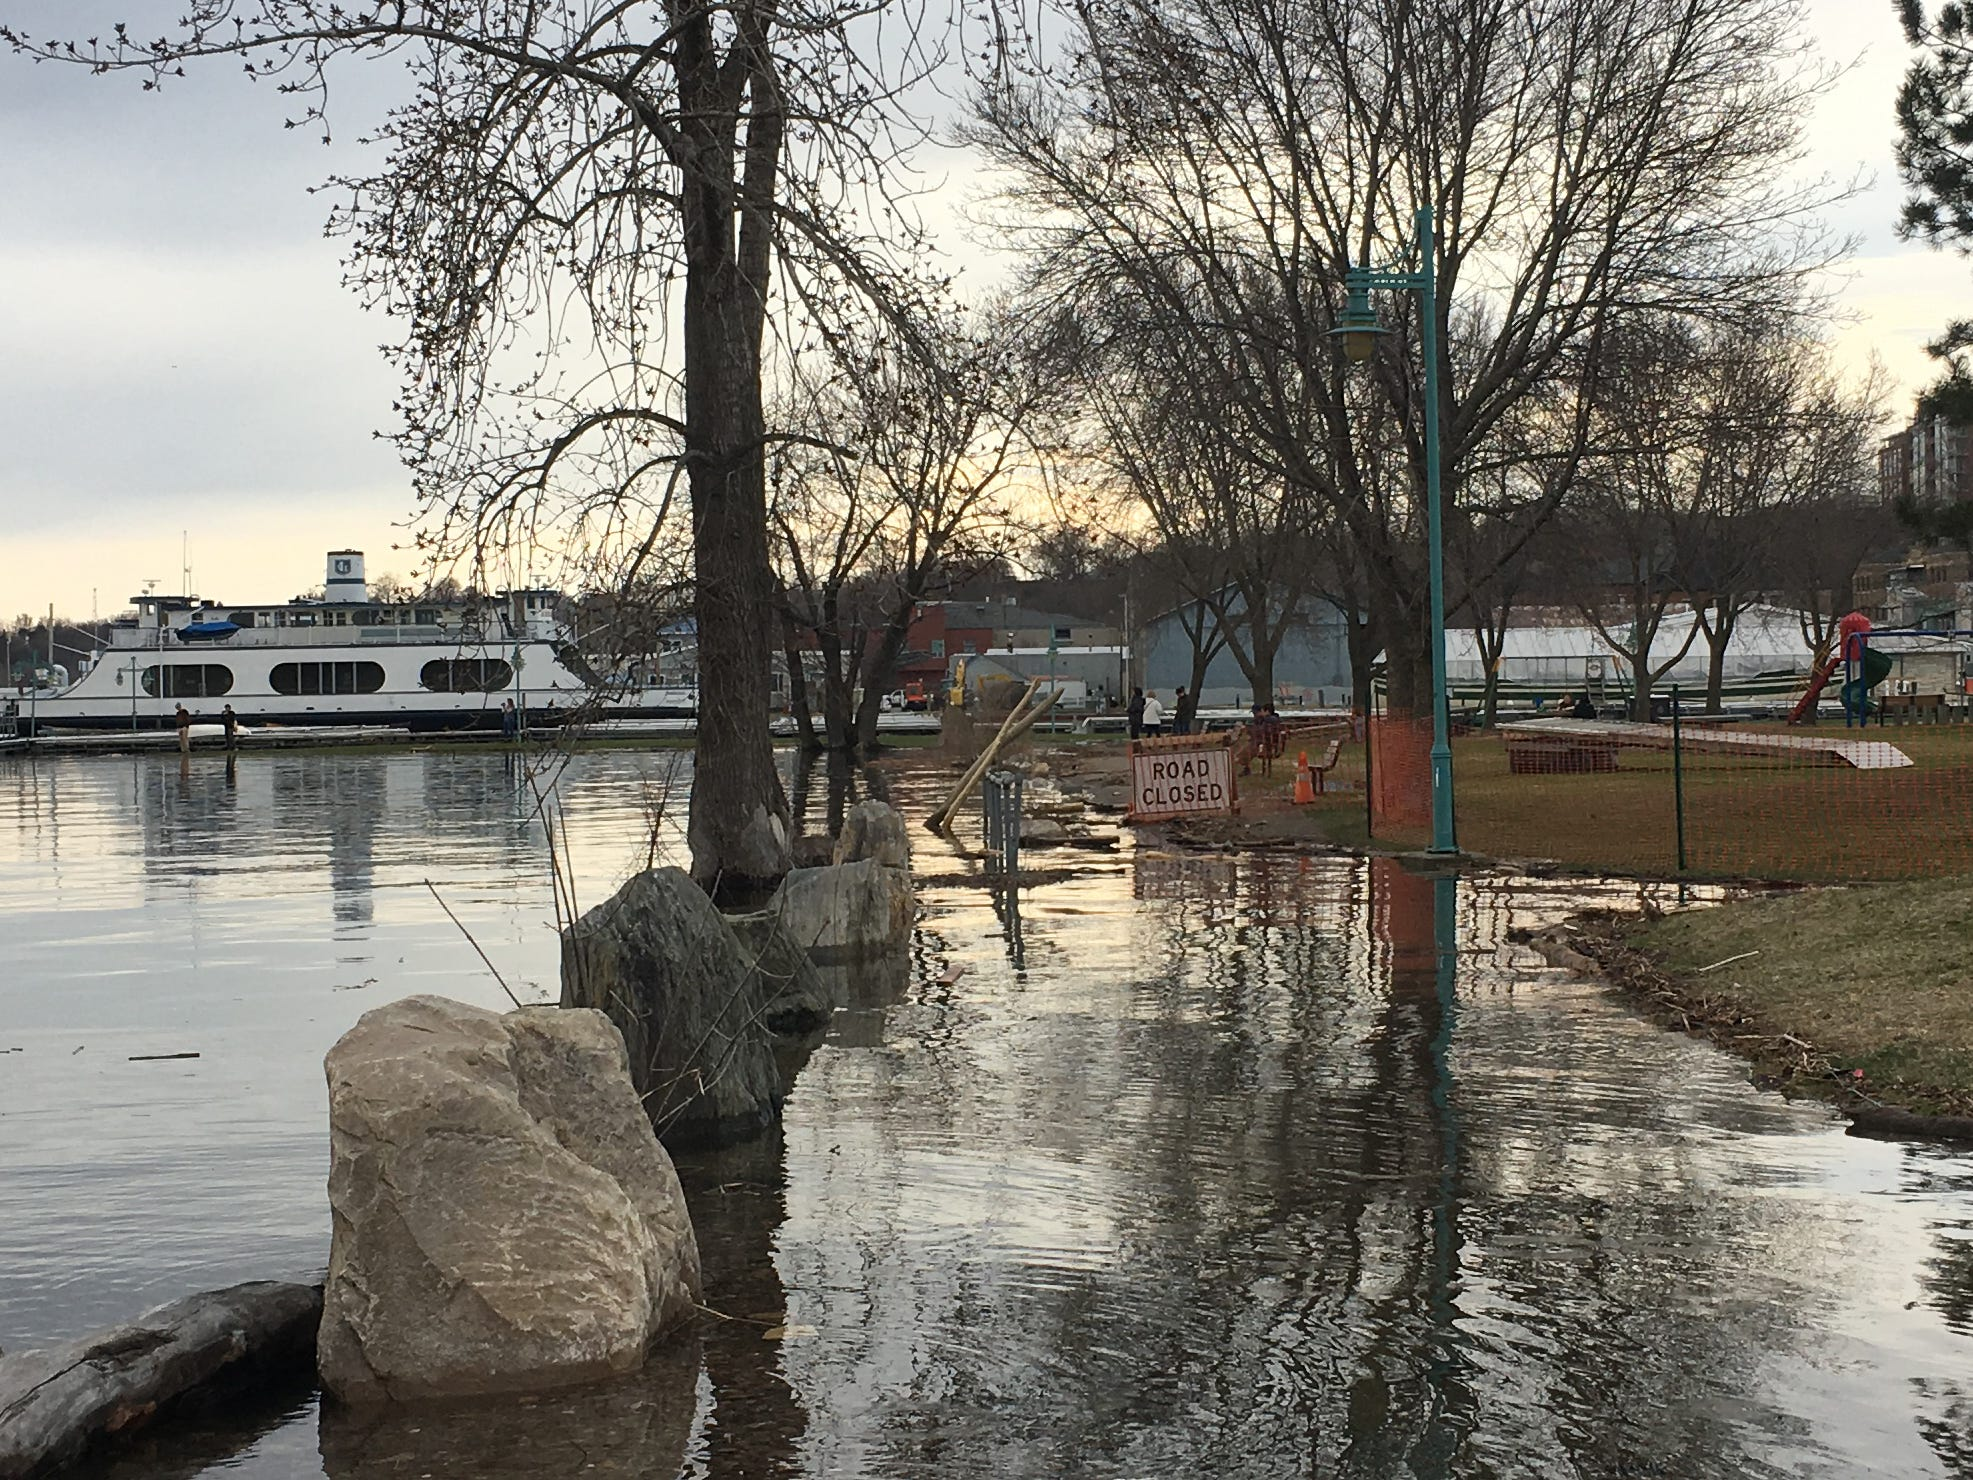 Portions of the Burlington Bike Path were closed due to high water on Tuesday, April 23, 2019.